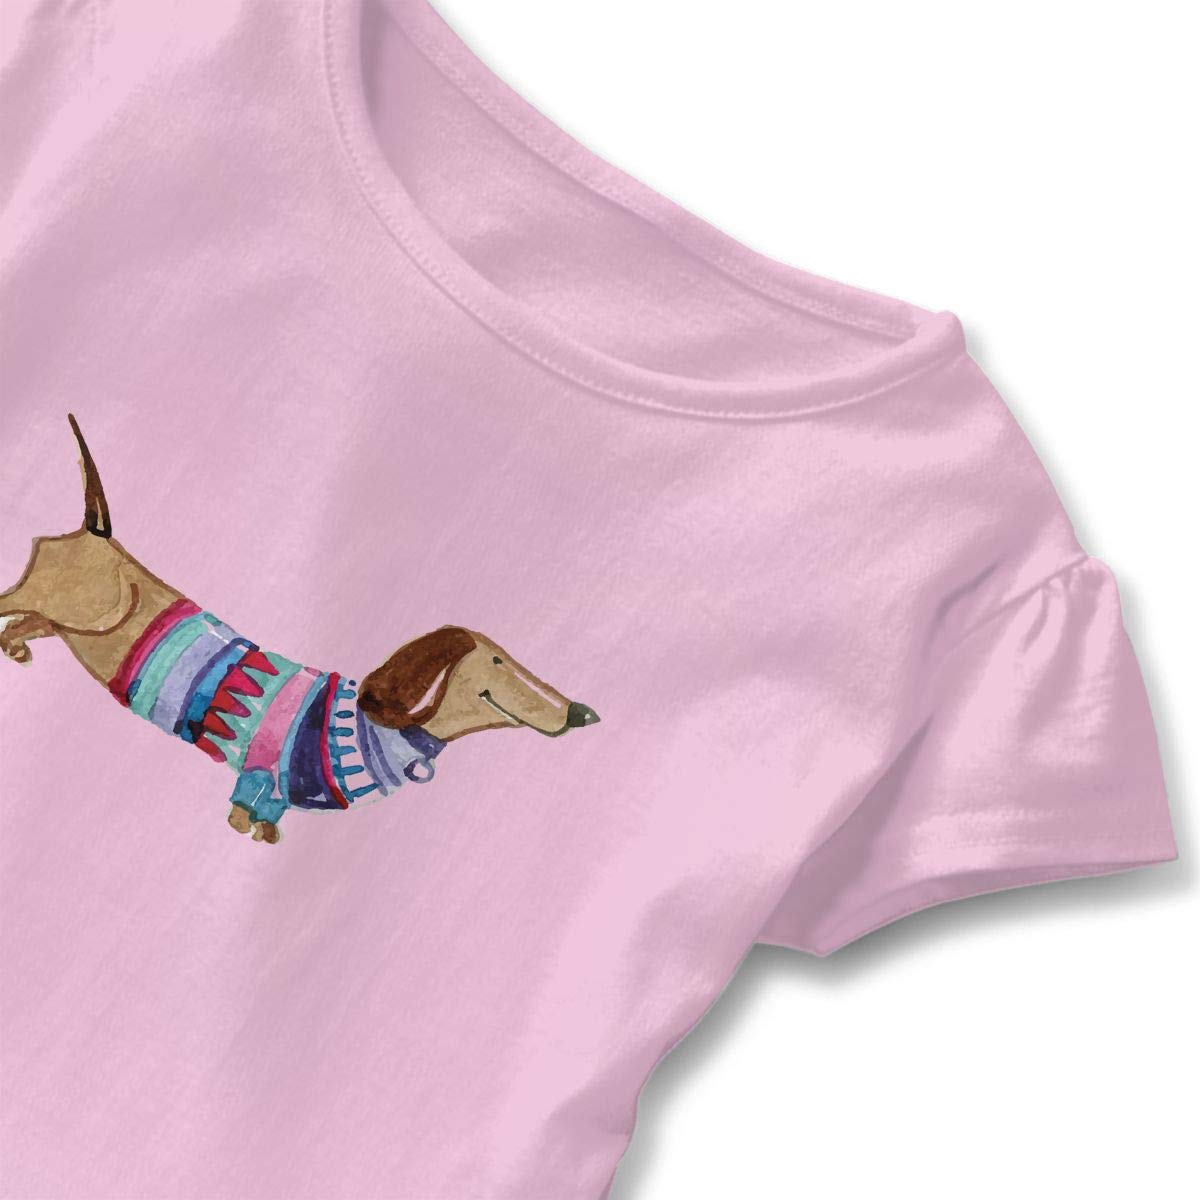 QUZtww Dachshund Square Cute Adorable Printed Patterns Basic Ruffle Tee Shirts with Short Sleeves and O-Neck for Daily Party School Outside Playing Pink